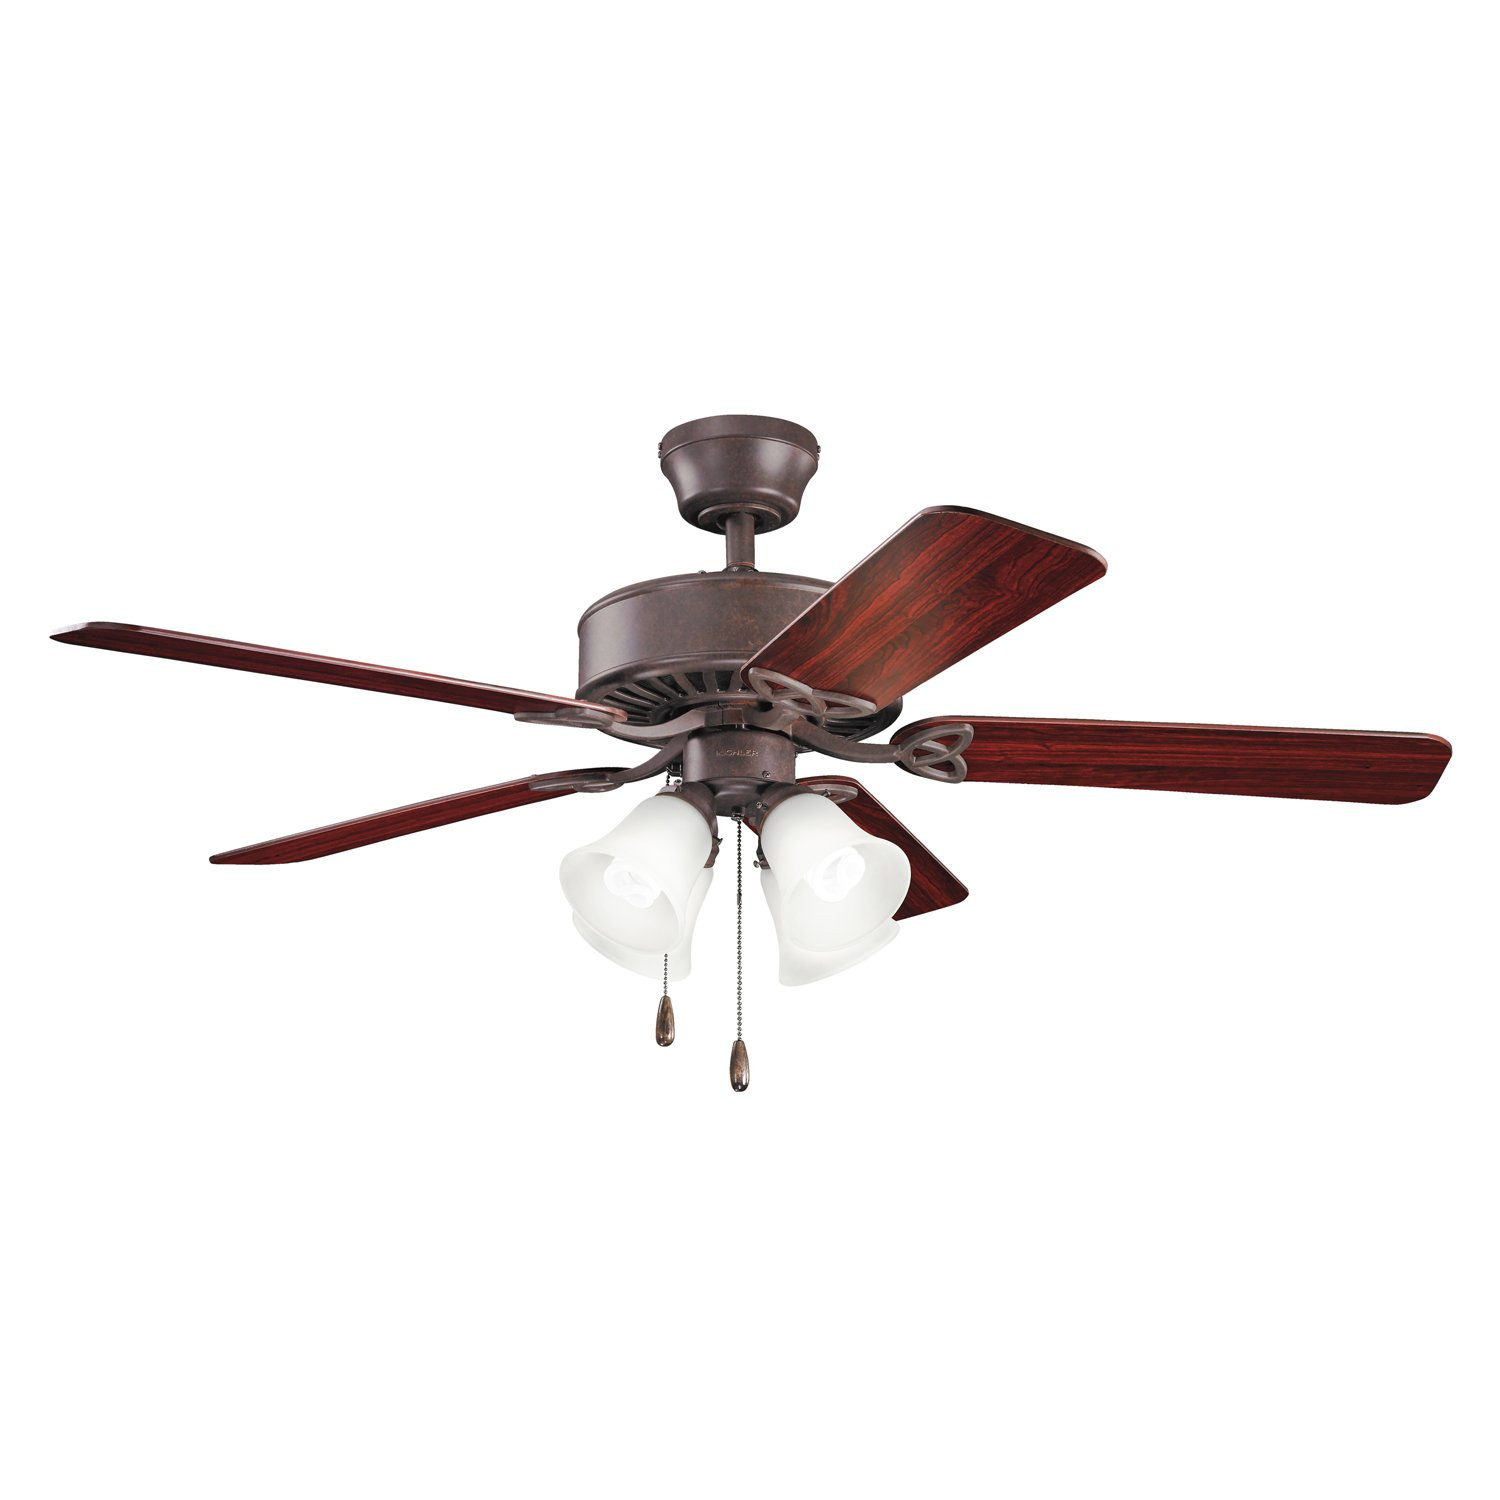 Kichler 339240NI 50-Inch Renew Premier Fan, Brushed Nickel - - Amazon.com